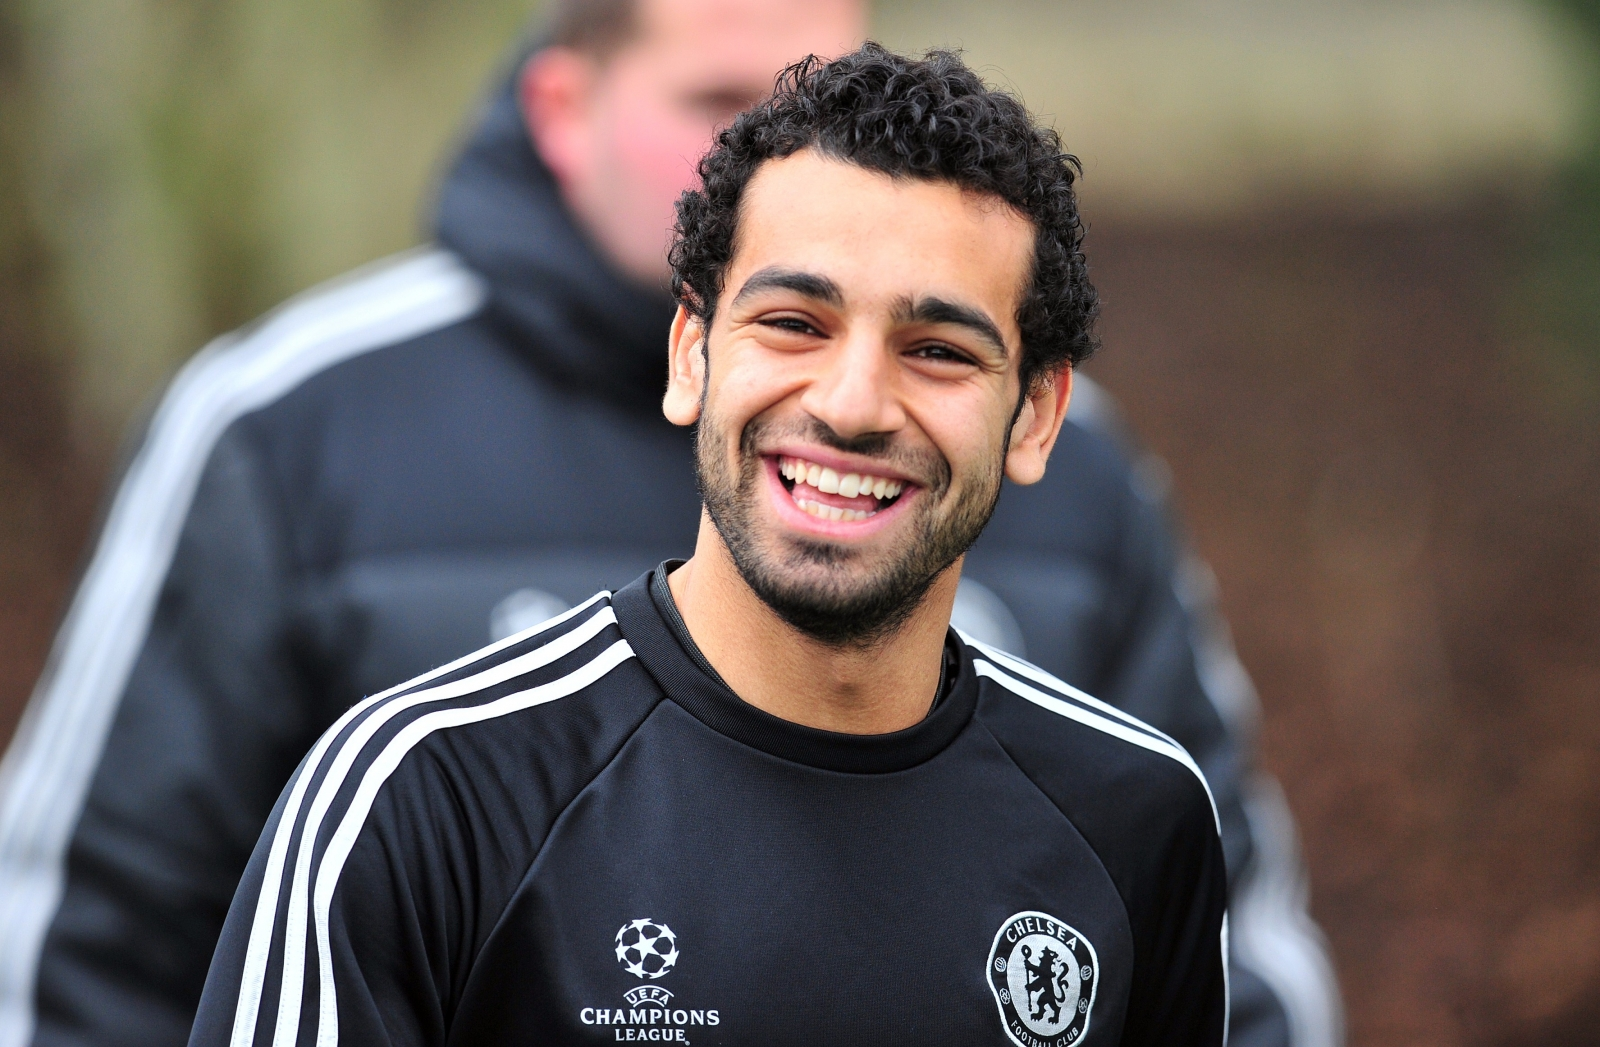 Mohamed Salah: Chelsea Confirm Mohamed Salah Move To Roma Includes Option